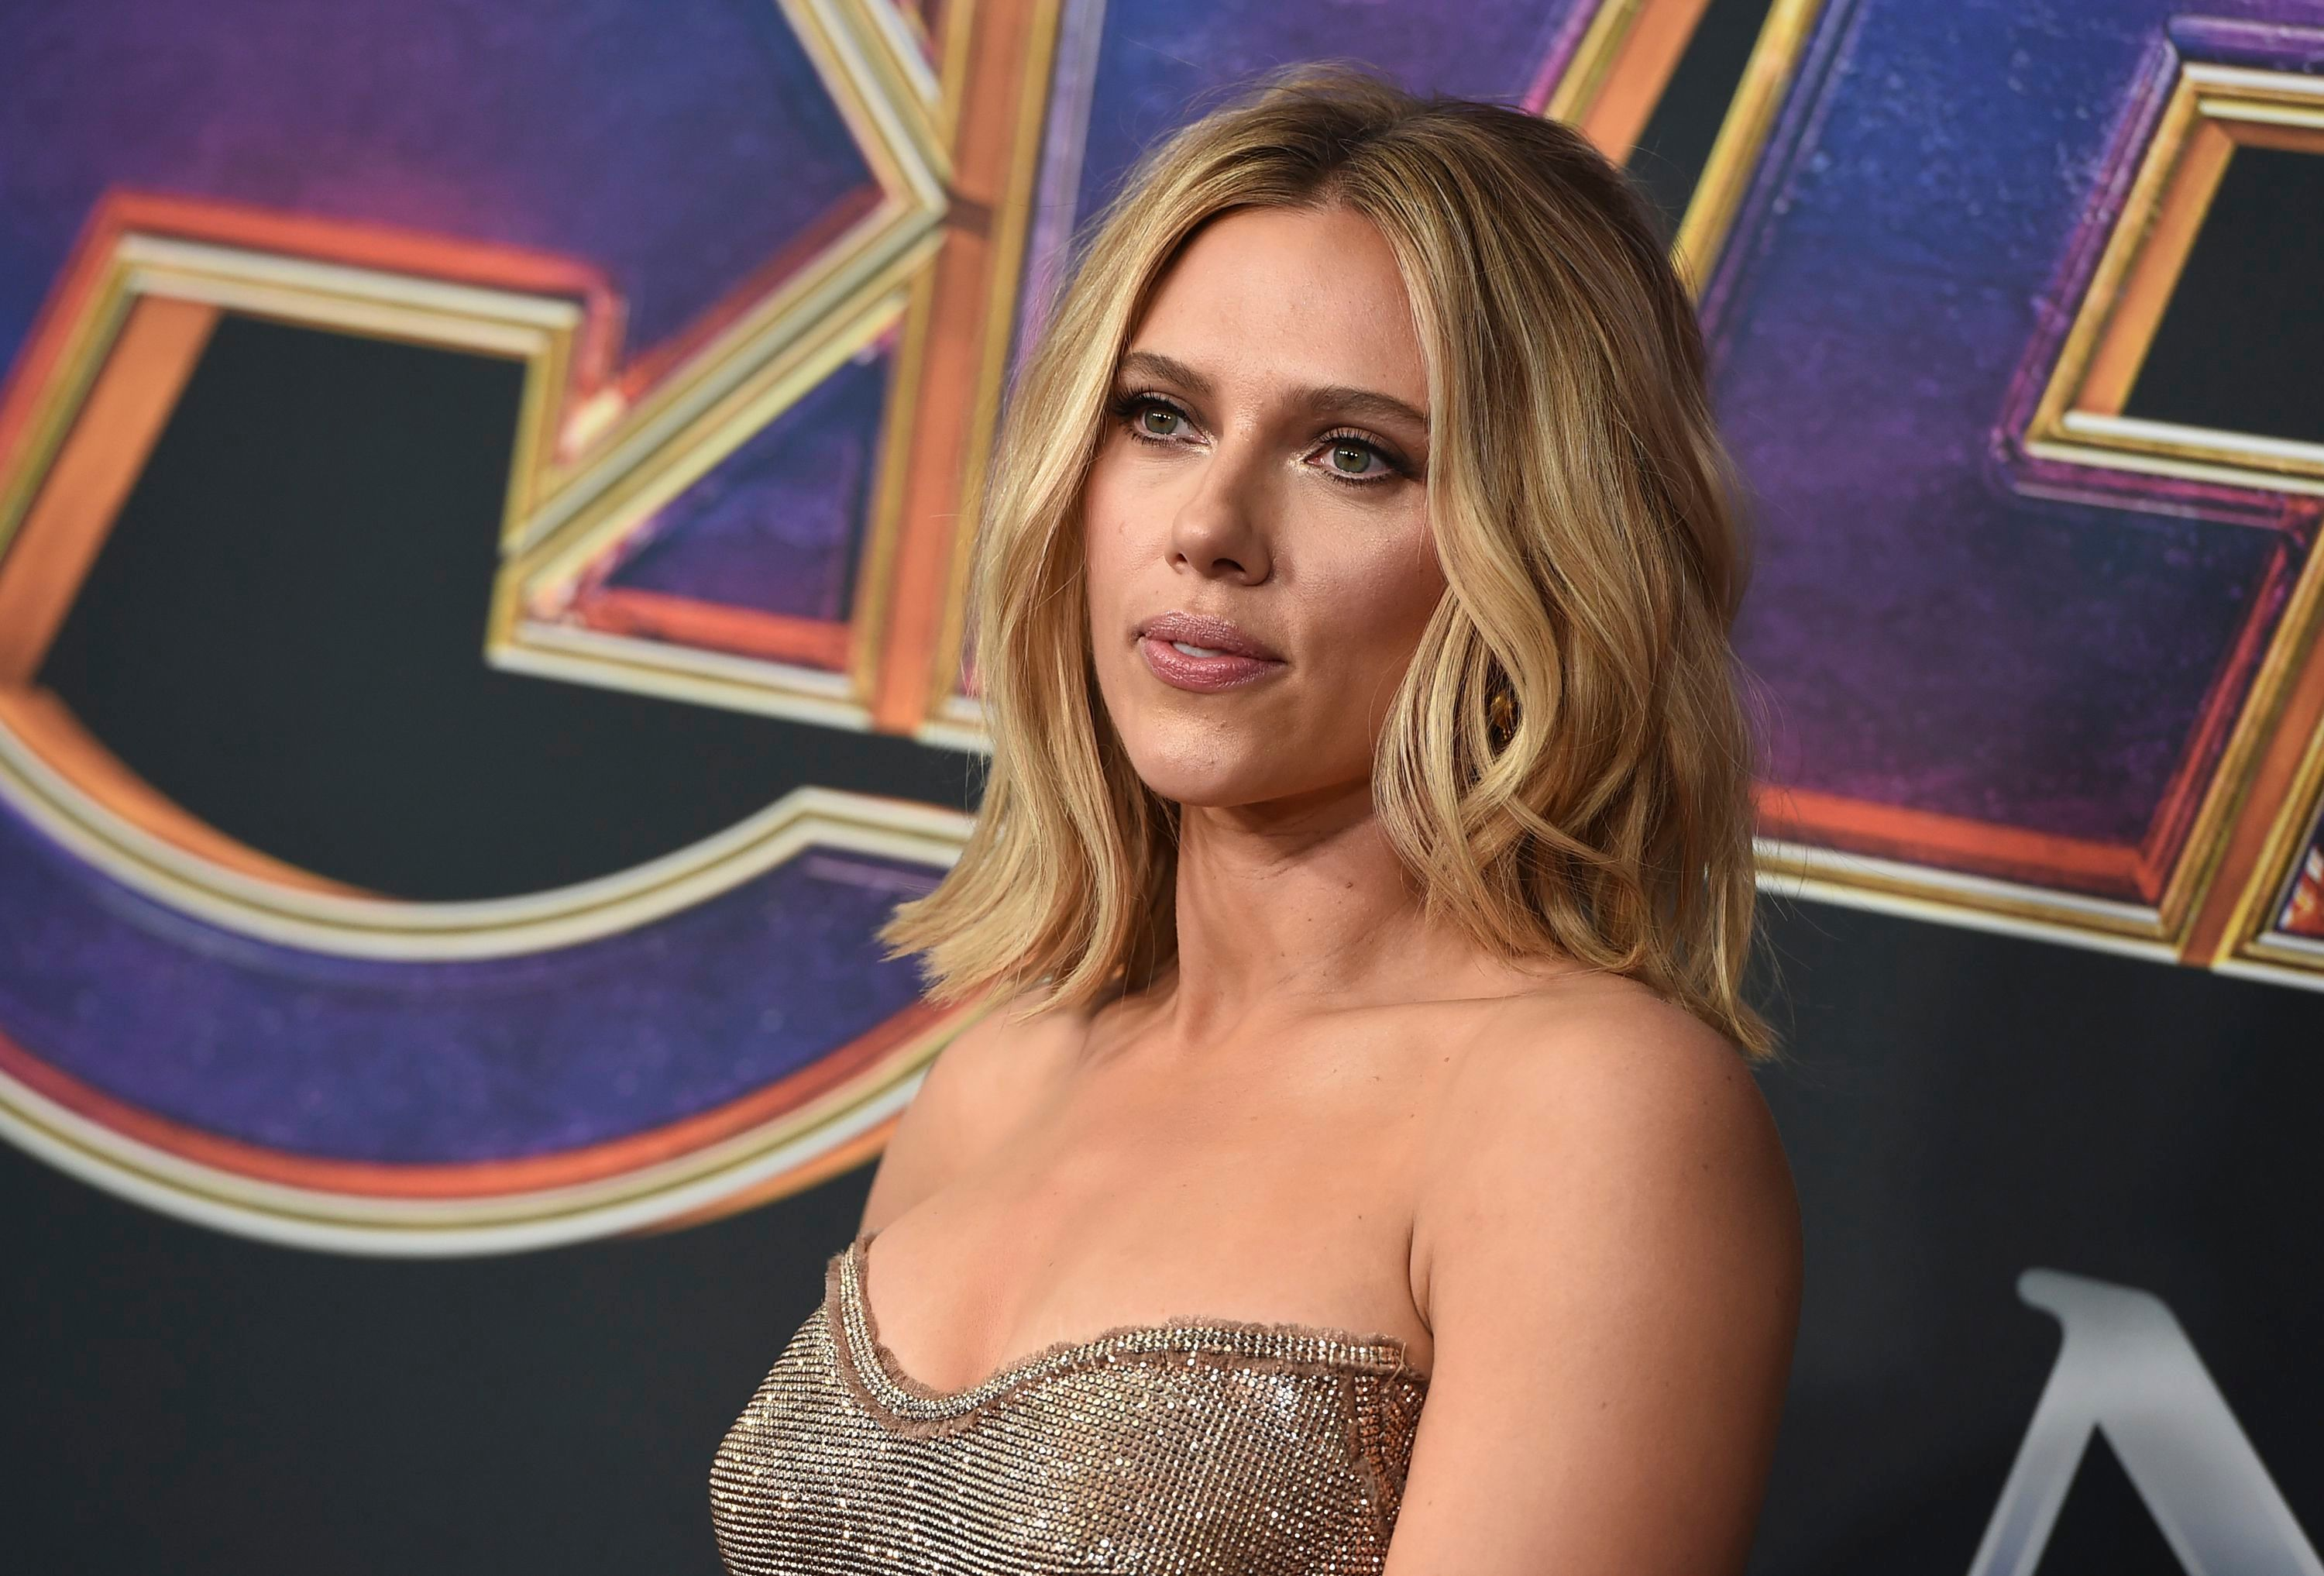 Scarlett Johansson on Casting Controversies: 'I Should Be Allowed to Play Any Person'